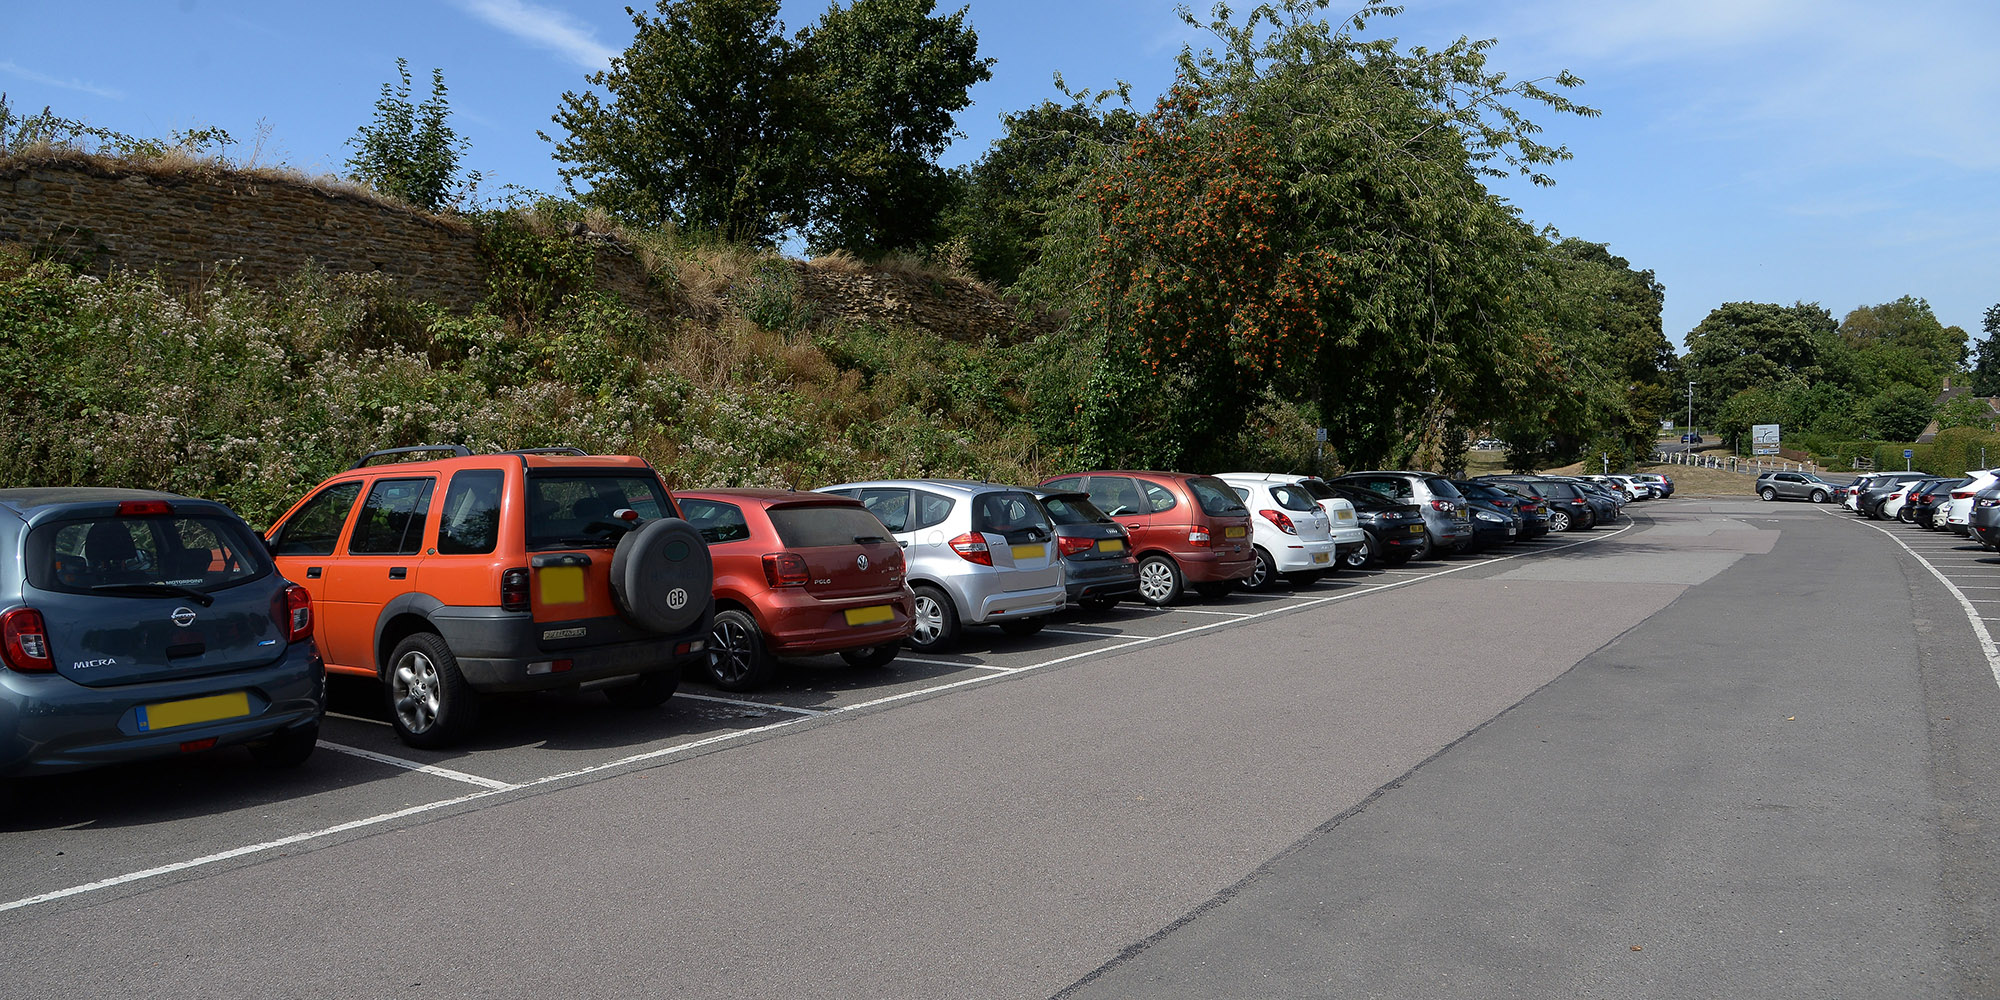 Burley Road Car Park